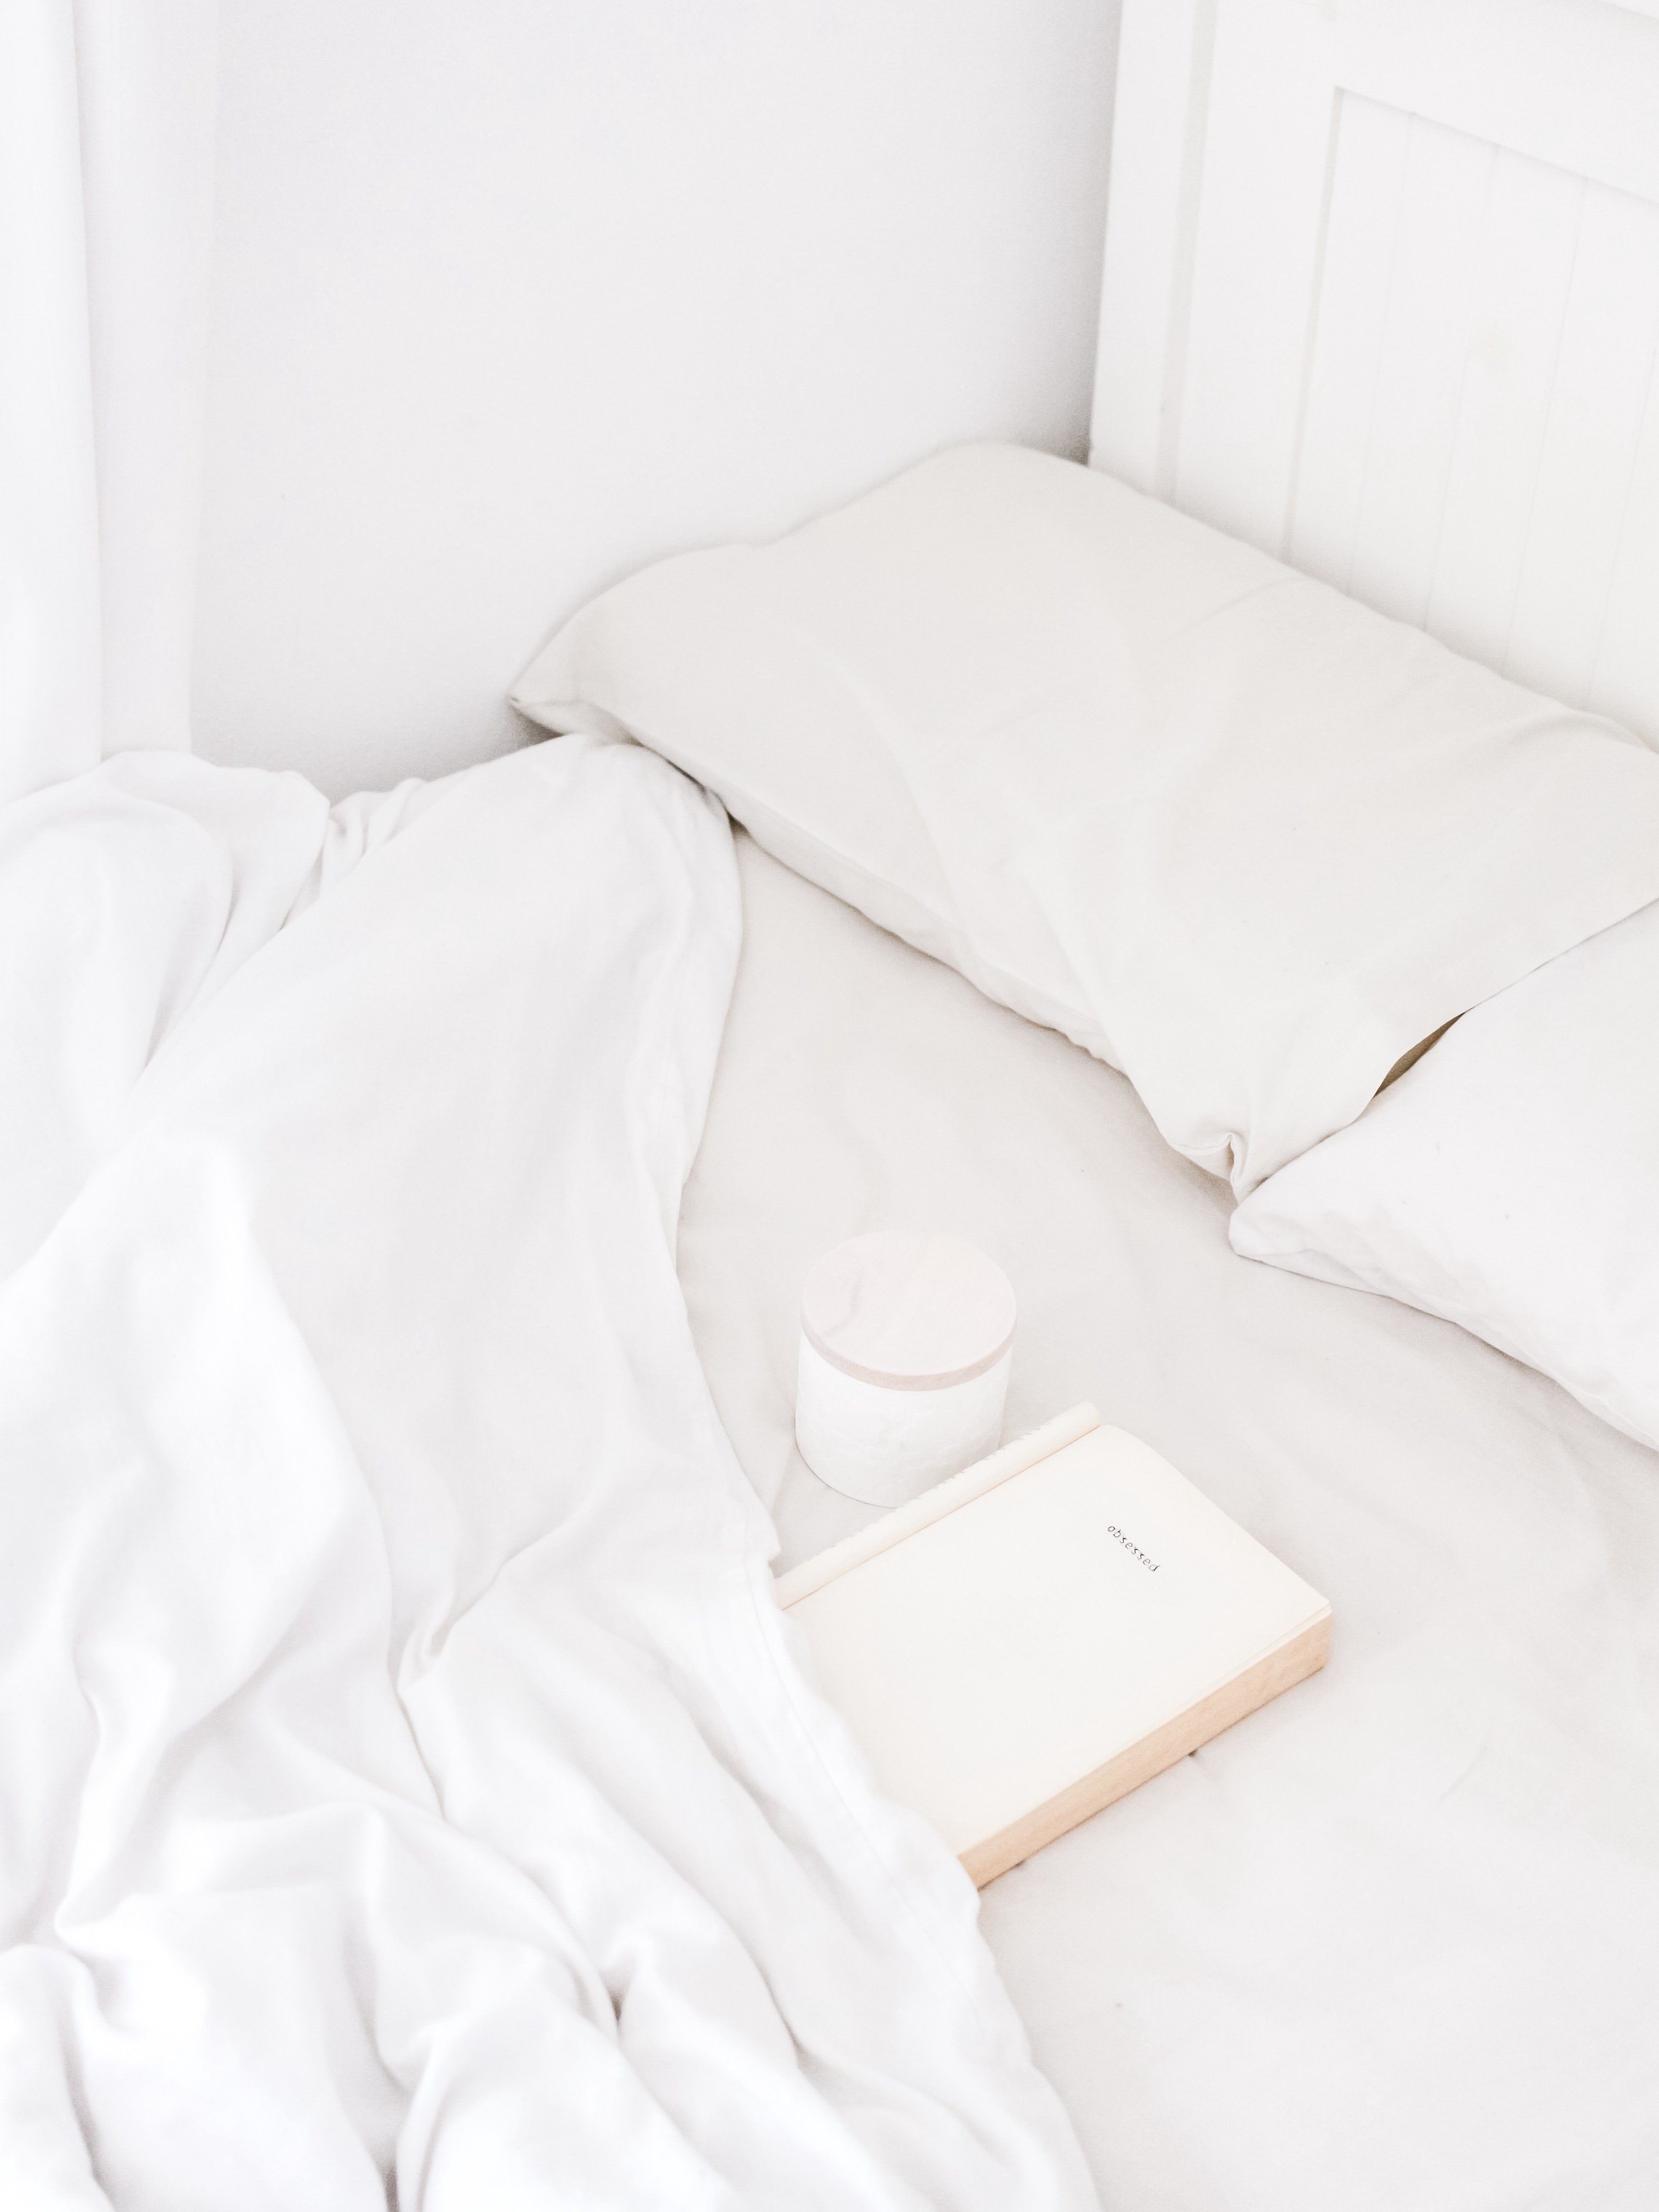 Unmade bed with book and coffee cup in covers